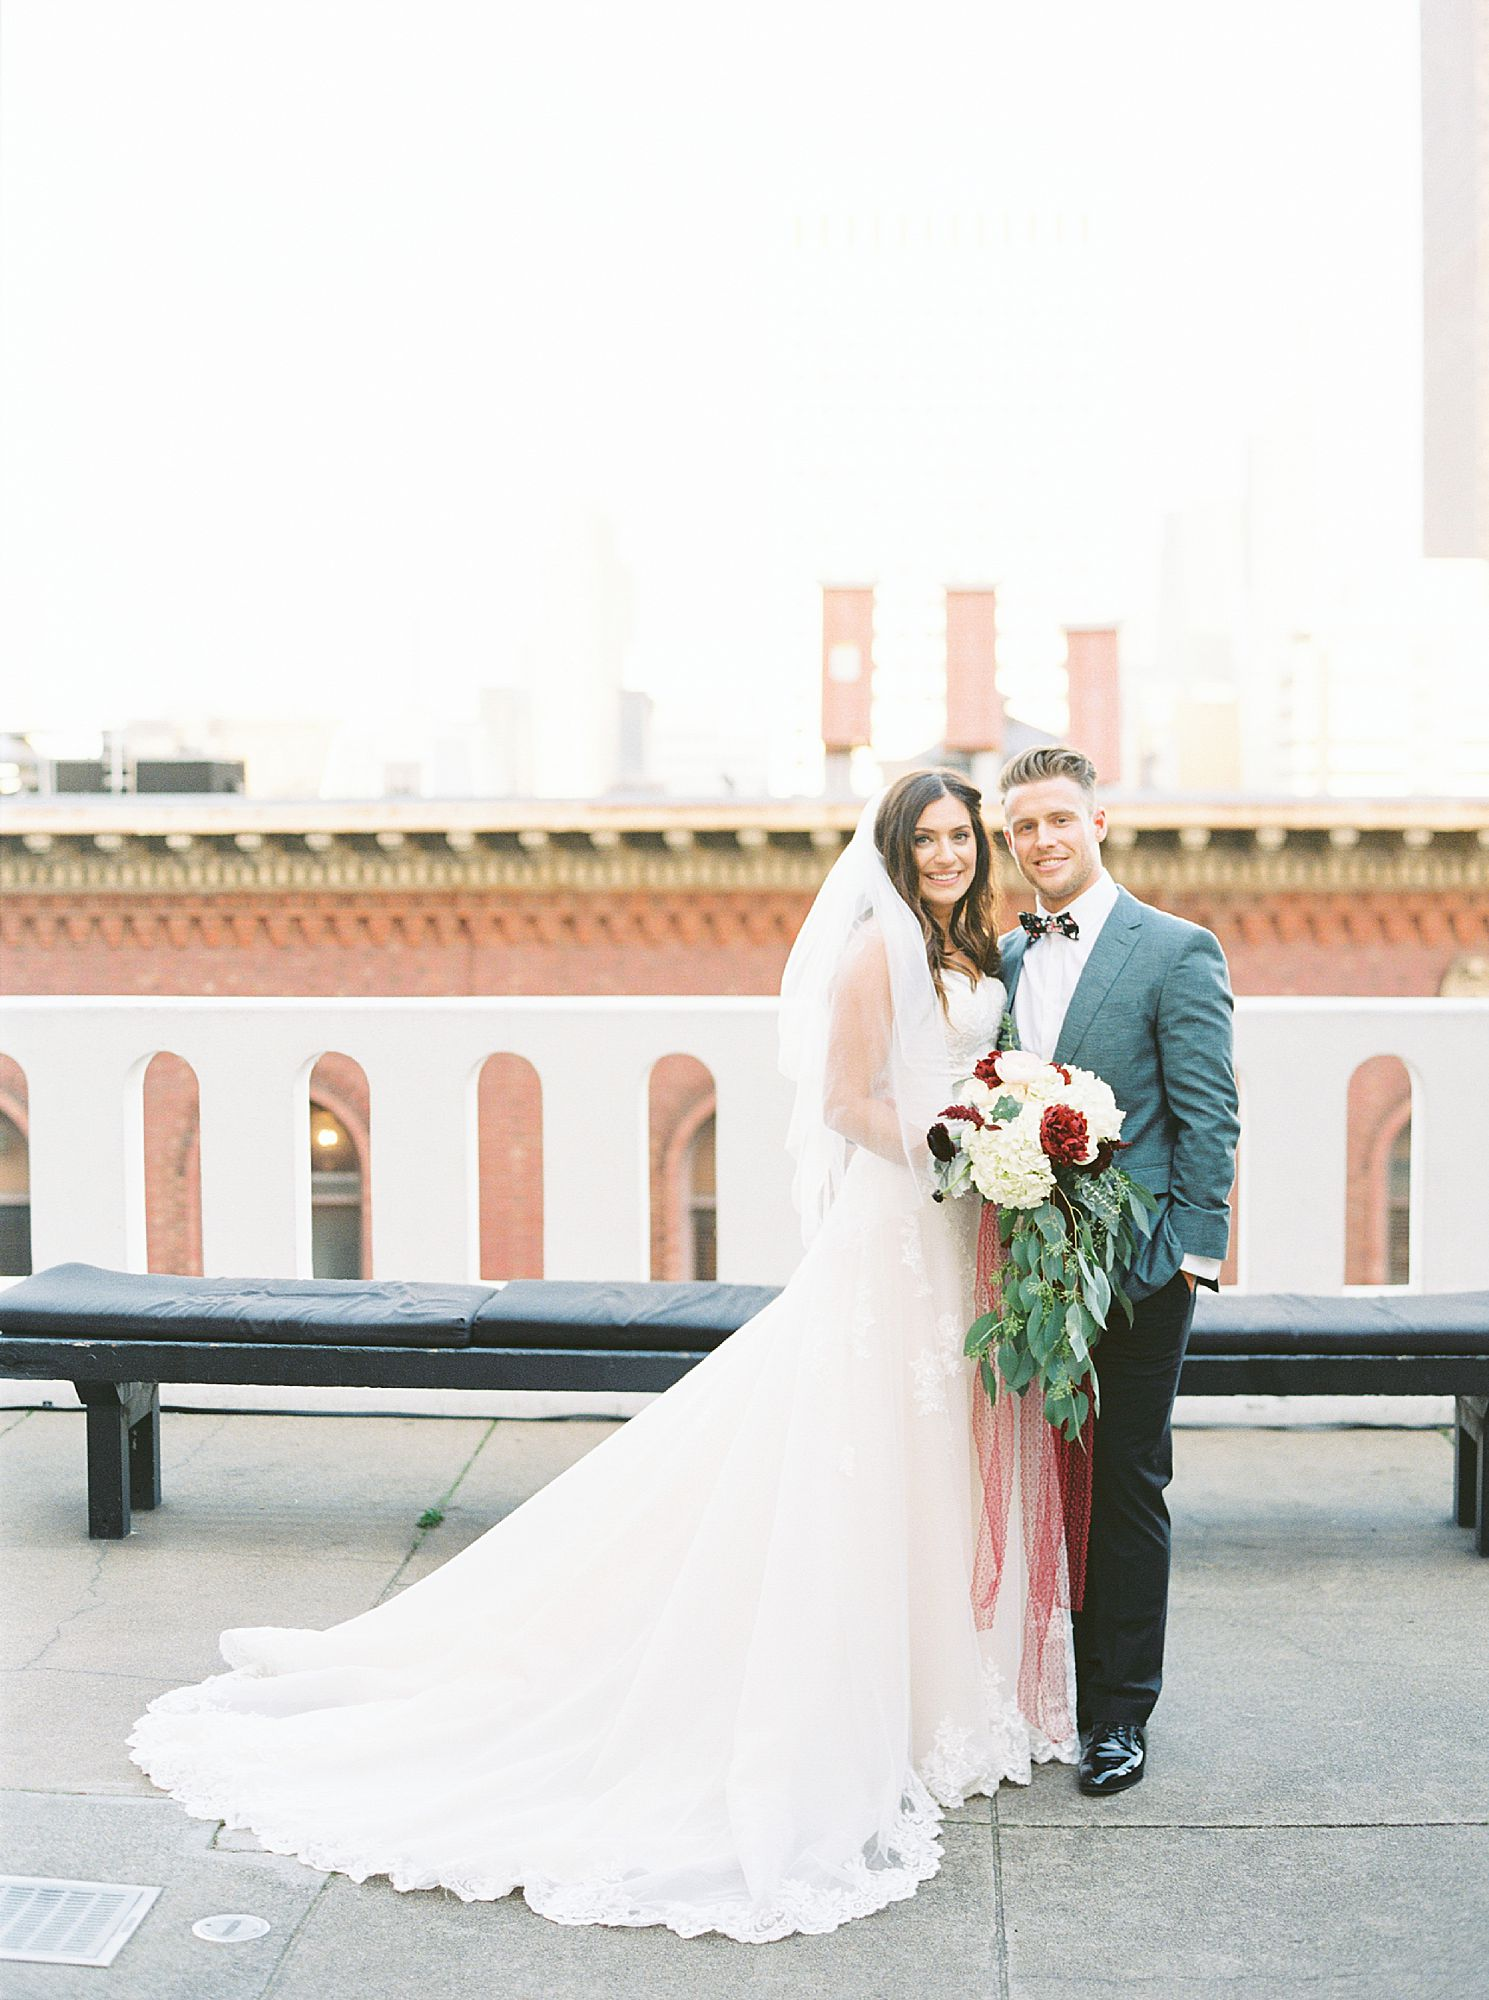 University Club Wedding in San Francisco - Cortney and Jon - San Francisco Wedding - Ashley Baumgartner - SF Wedding Photographer_0075.jpg